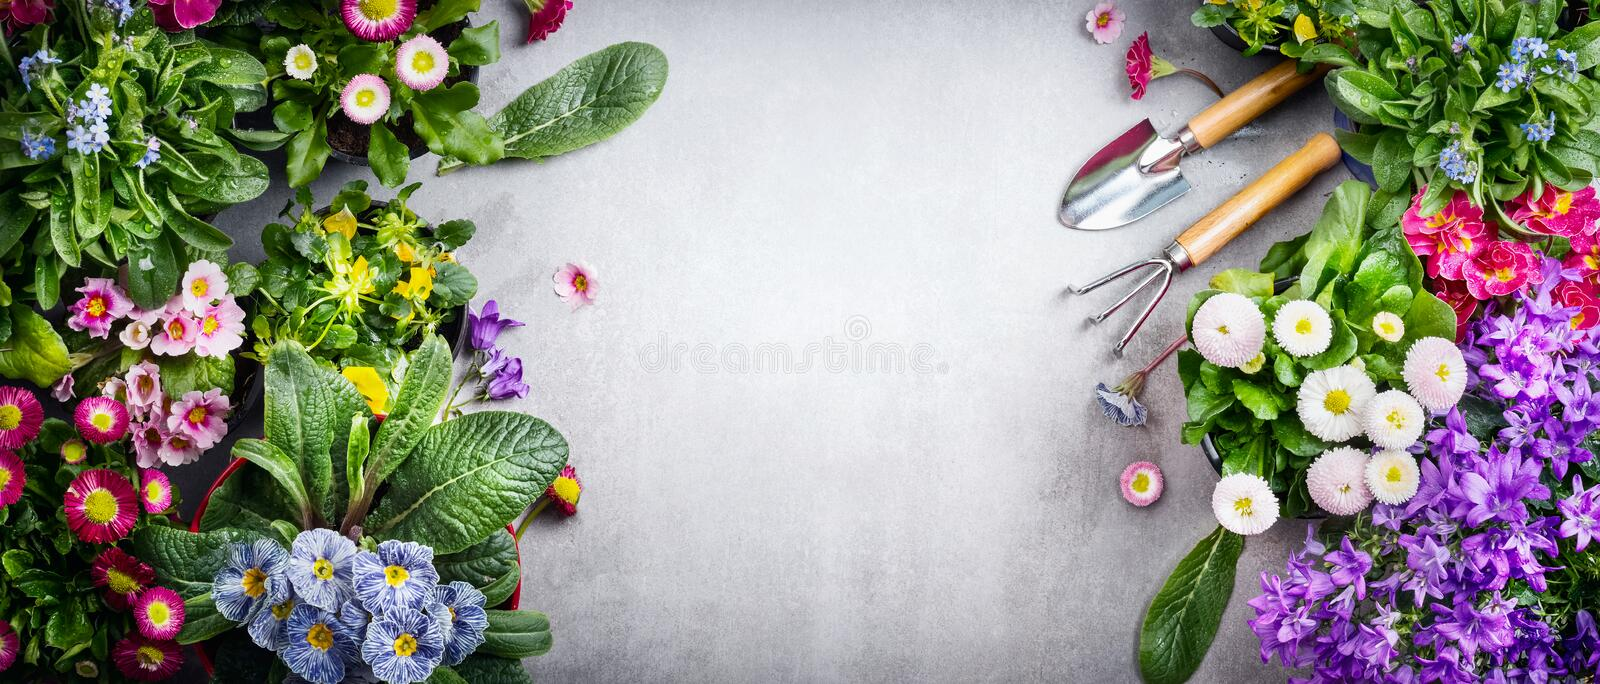 Floral gardening background with variety of colorful garden flowers and gardening tools on concrete background, top view, place fo royalty free stock photo